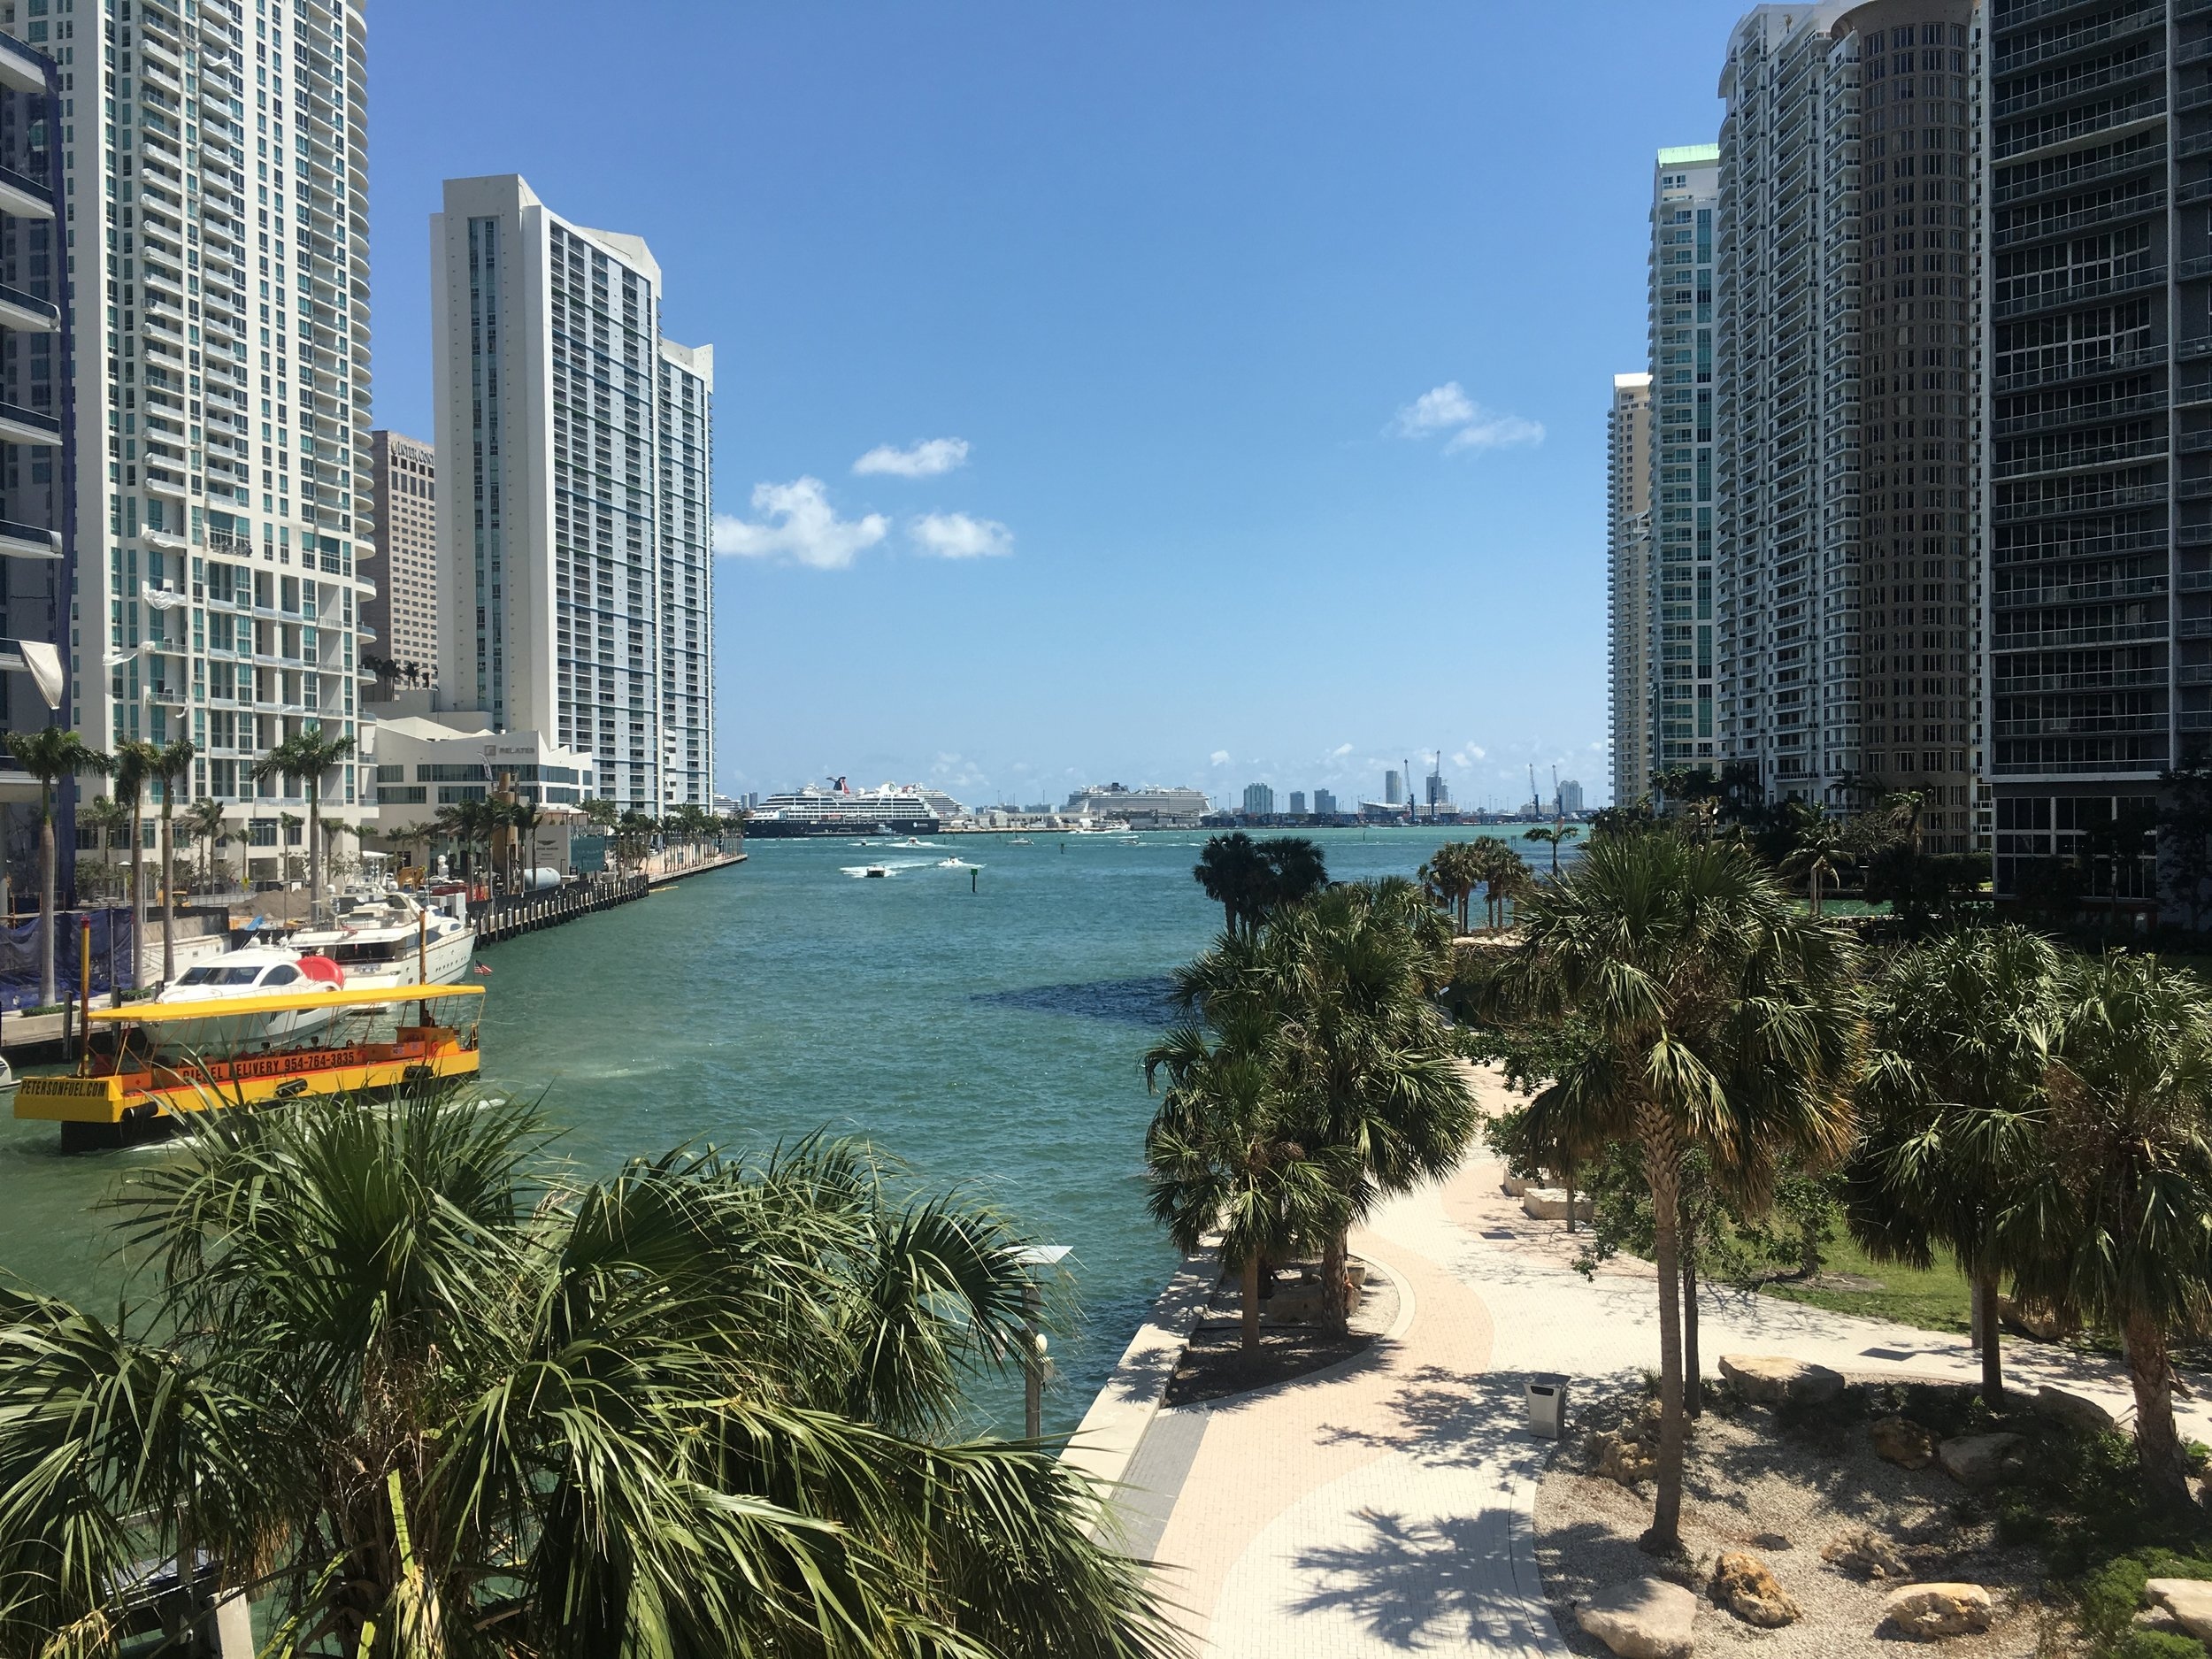 Brickell sits along the Intercoastal Waterway, parks, little drawbridges make it an interesting place to walk.